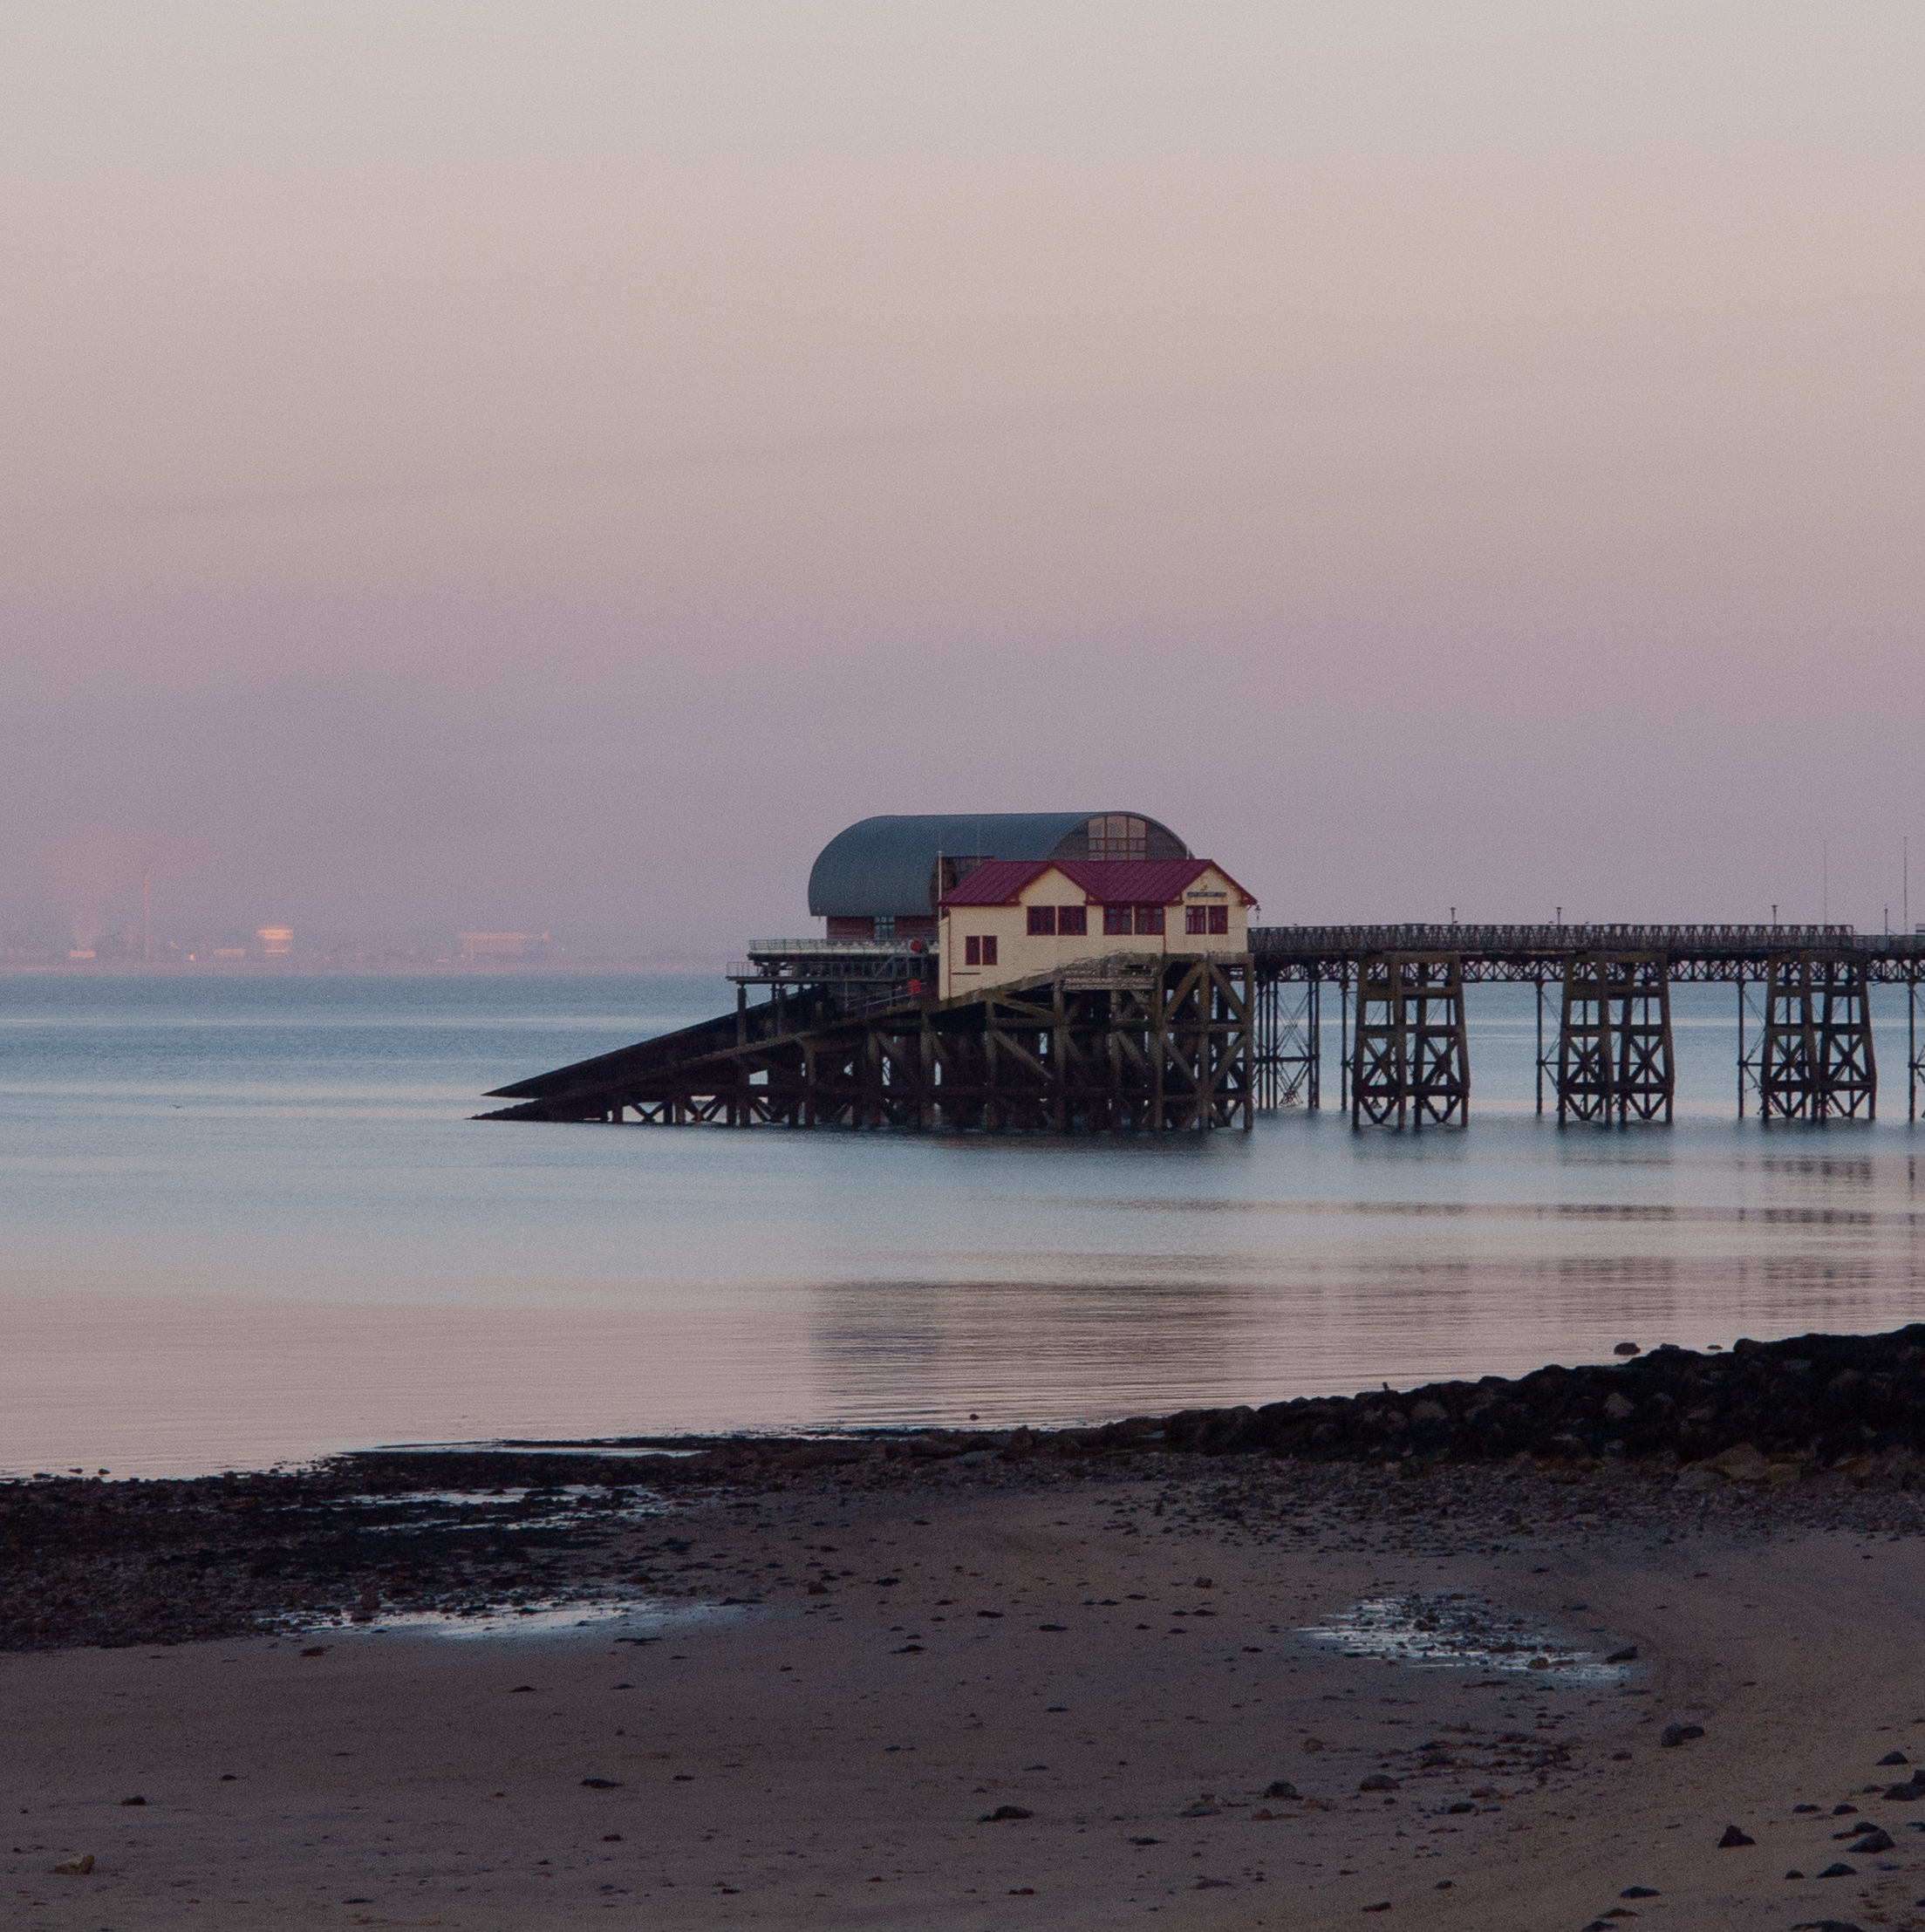 Mumbles Pier & Lifeboat houses (Old and New)